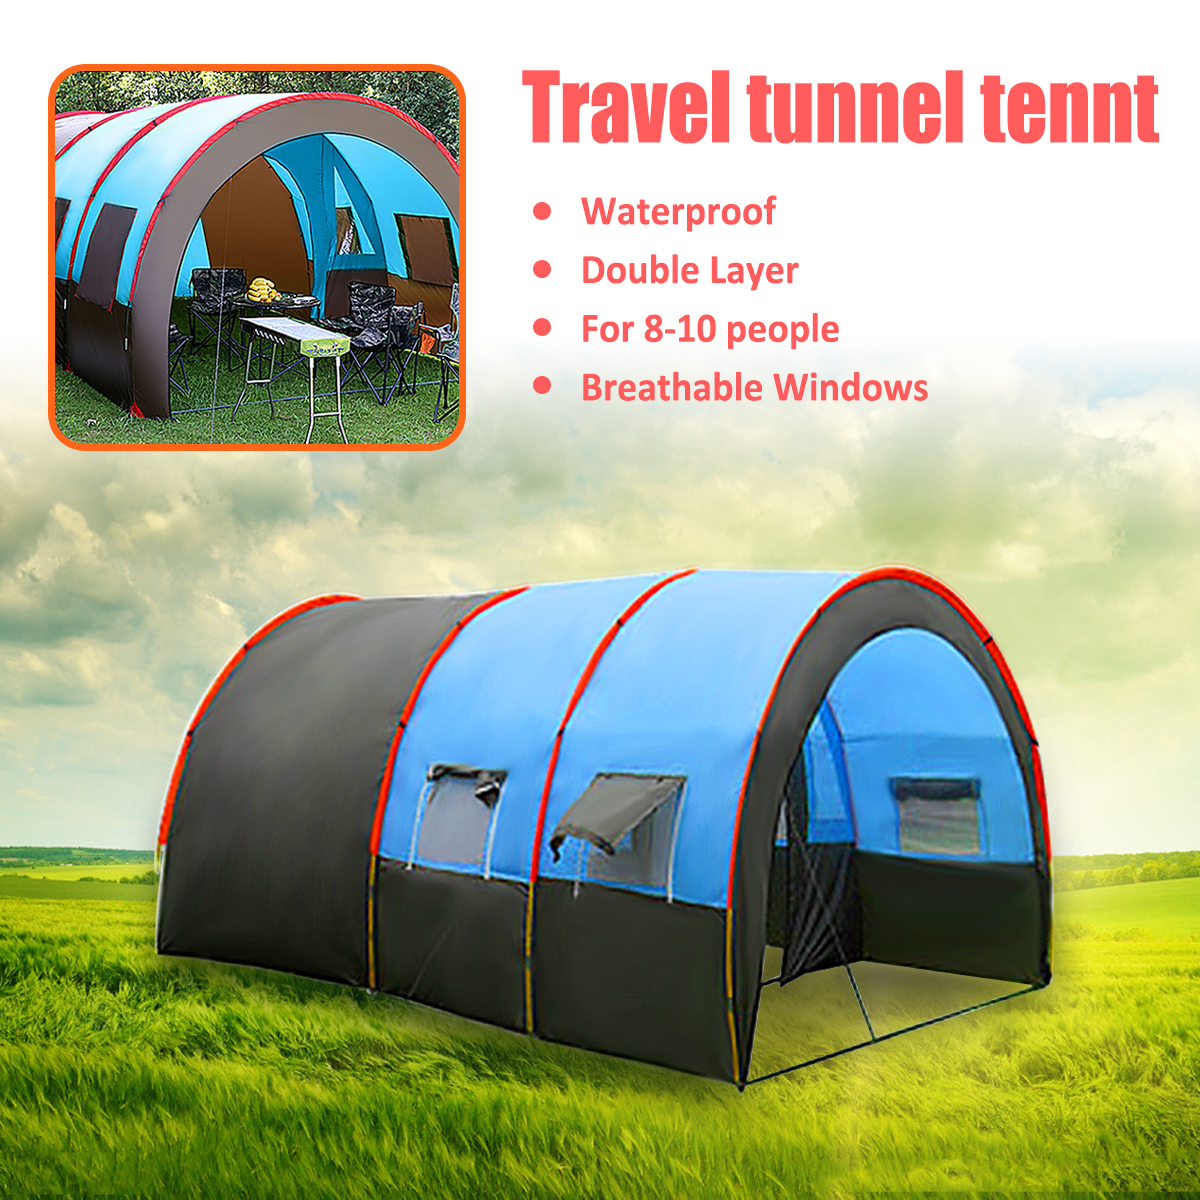 More Useful 8-10 People Waterproof Portable Travel Camping Tent Hiking Double Layer Oxford Cloth High Strength Outdoor Tents mobi outdoor camping equipment hiking waterproof tents high quality wigwam double layer big camping tent